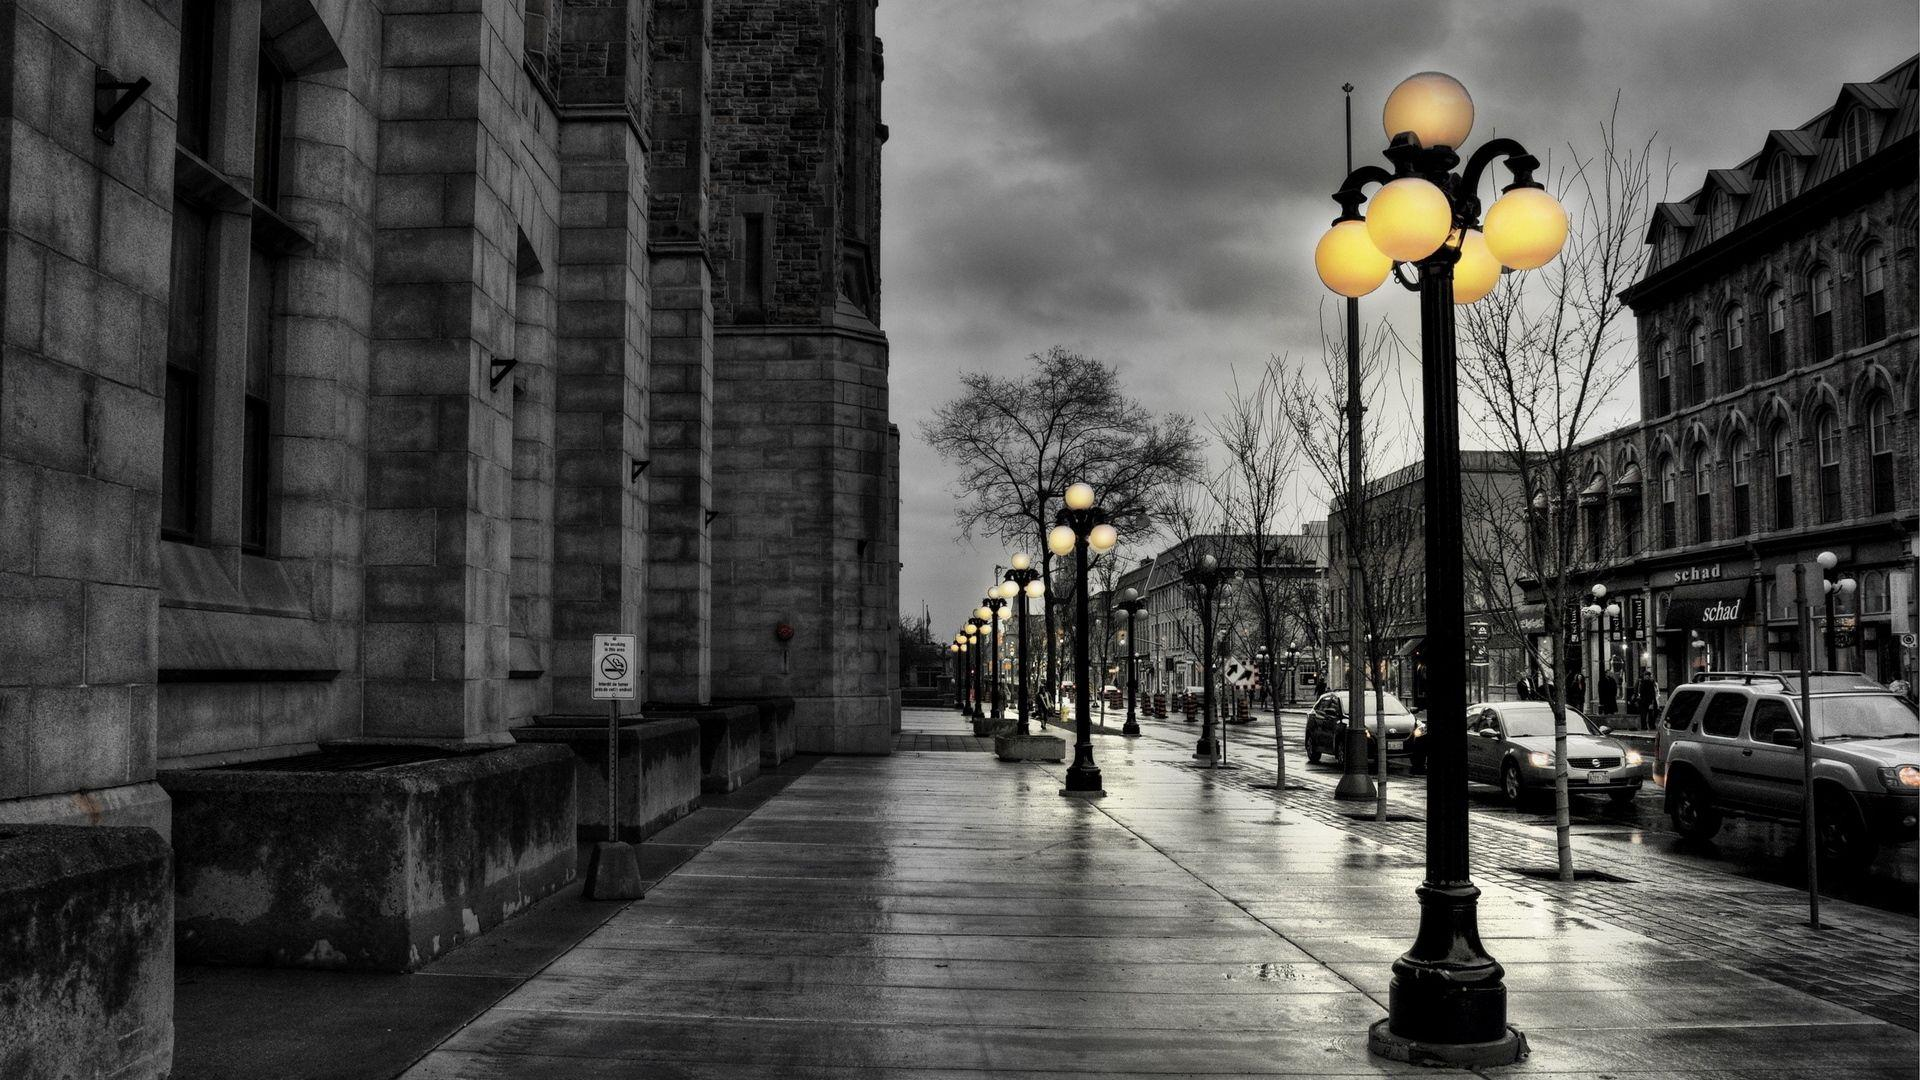 Download wallpapers 1920x1080 street, city, evening, black white